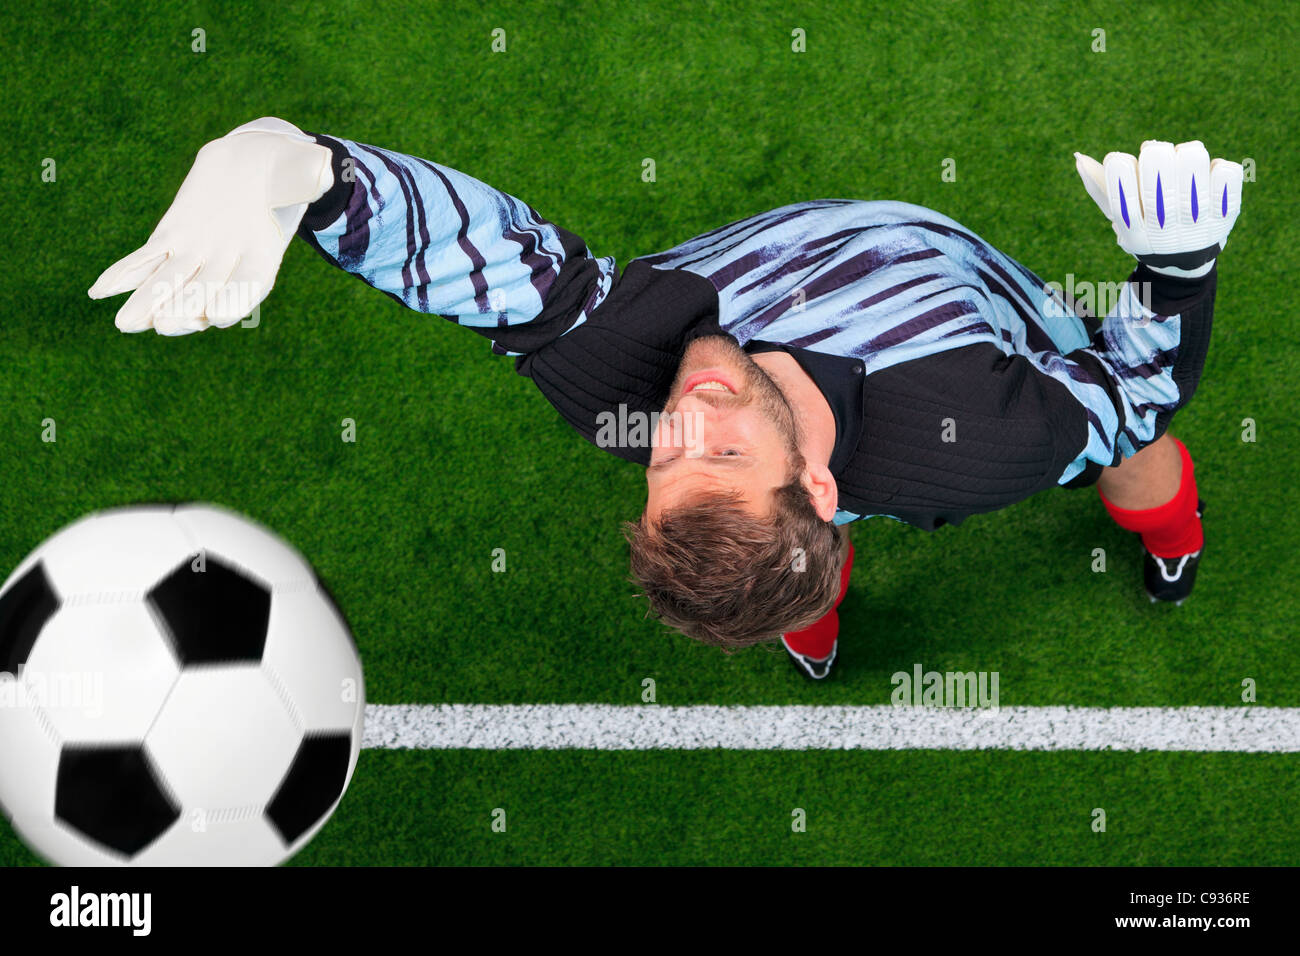 Overhead photo of a football goalkeeper missing saving the ball as it crosses over the line. - Stock Image